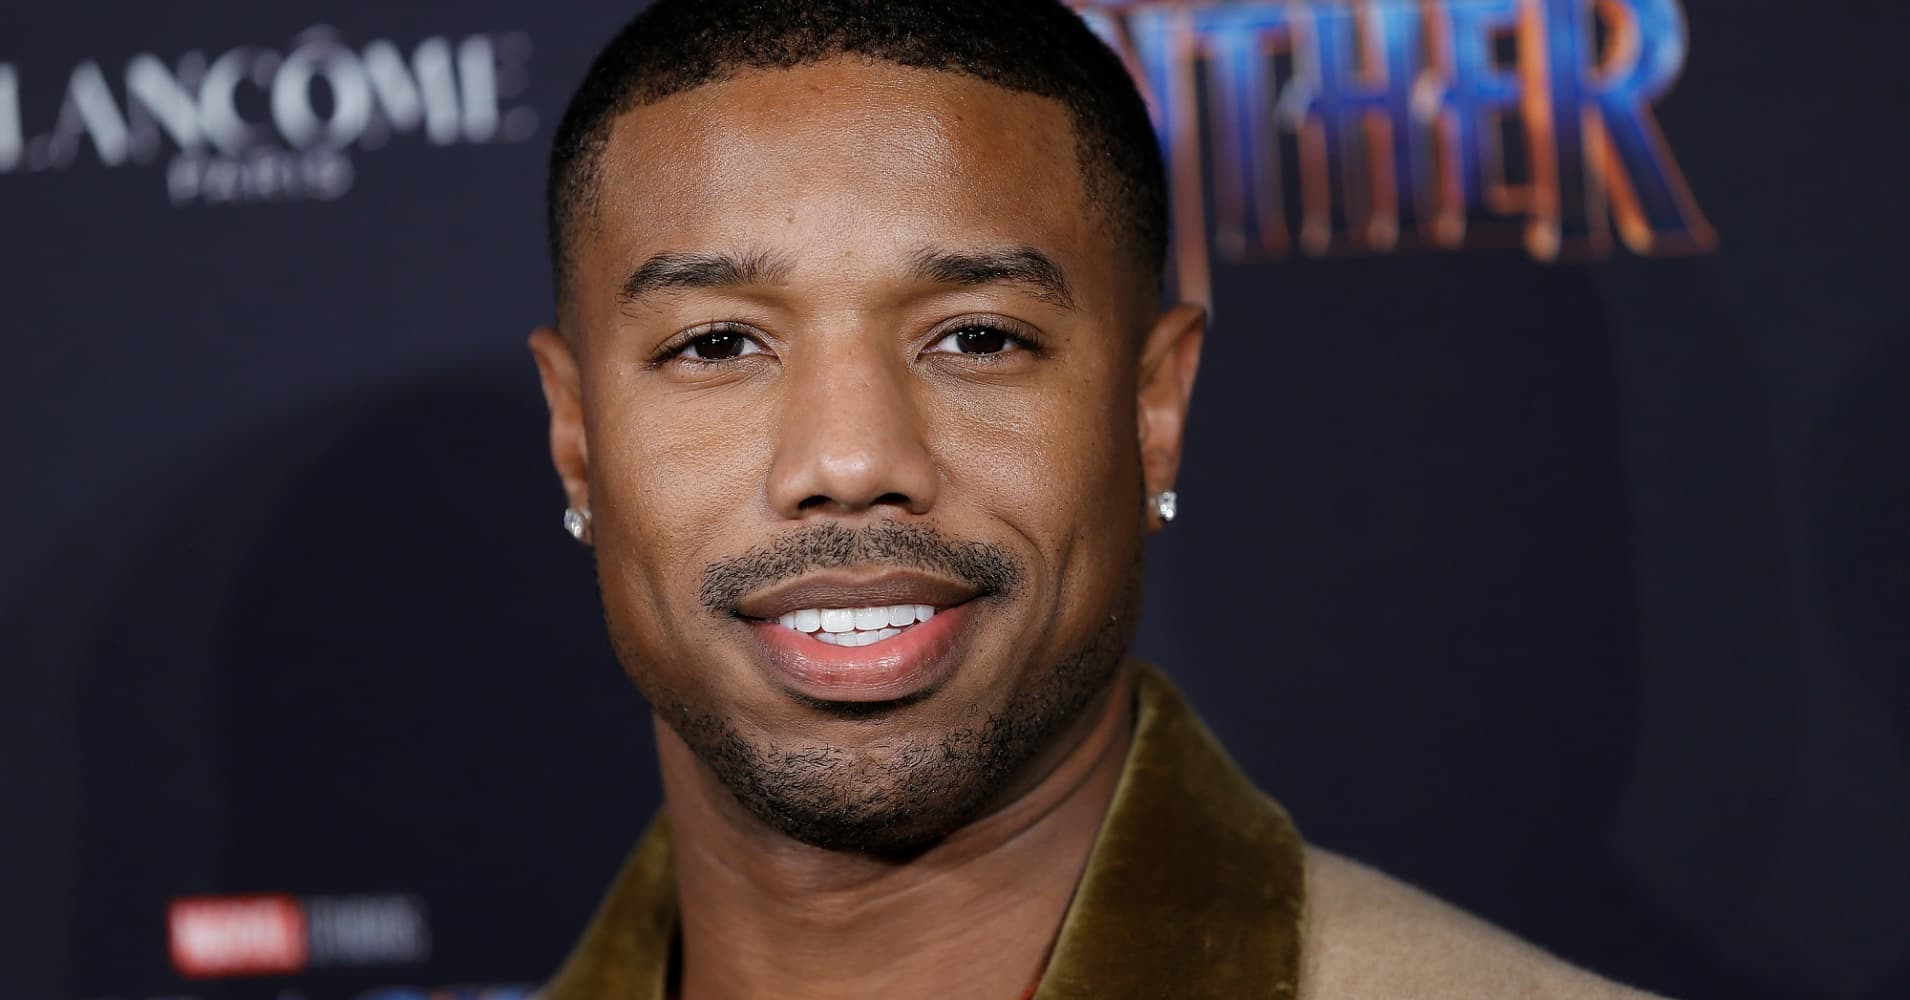 Michael B Jordan Offers To Buy Teen Black Panther Fan A New Retainer